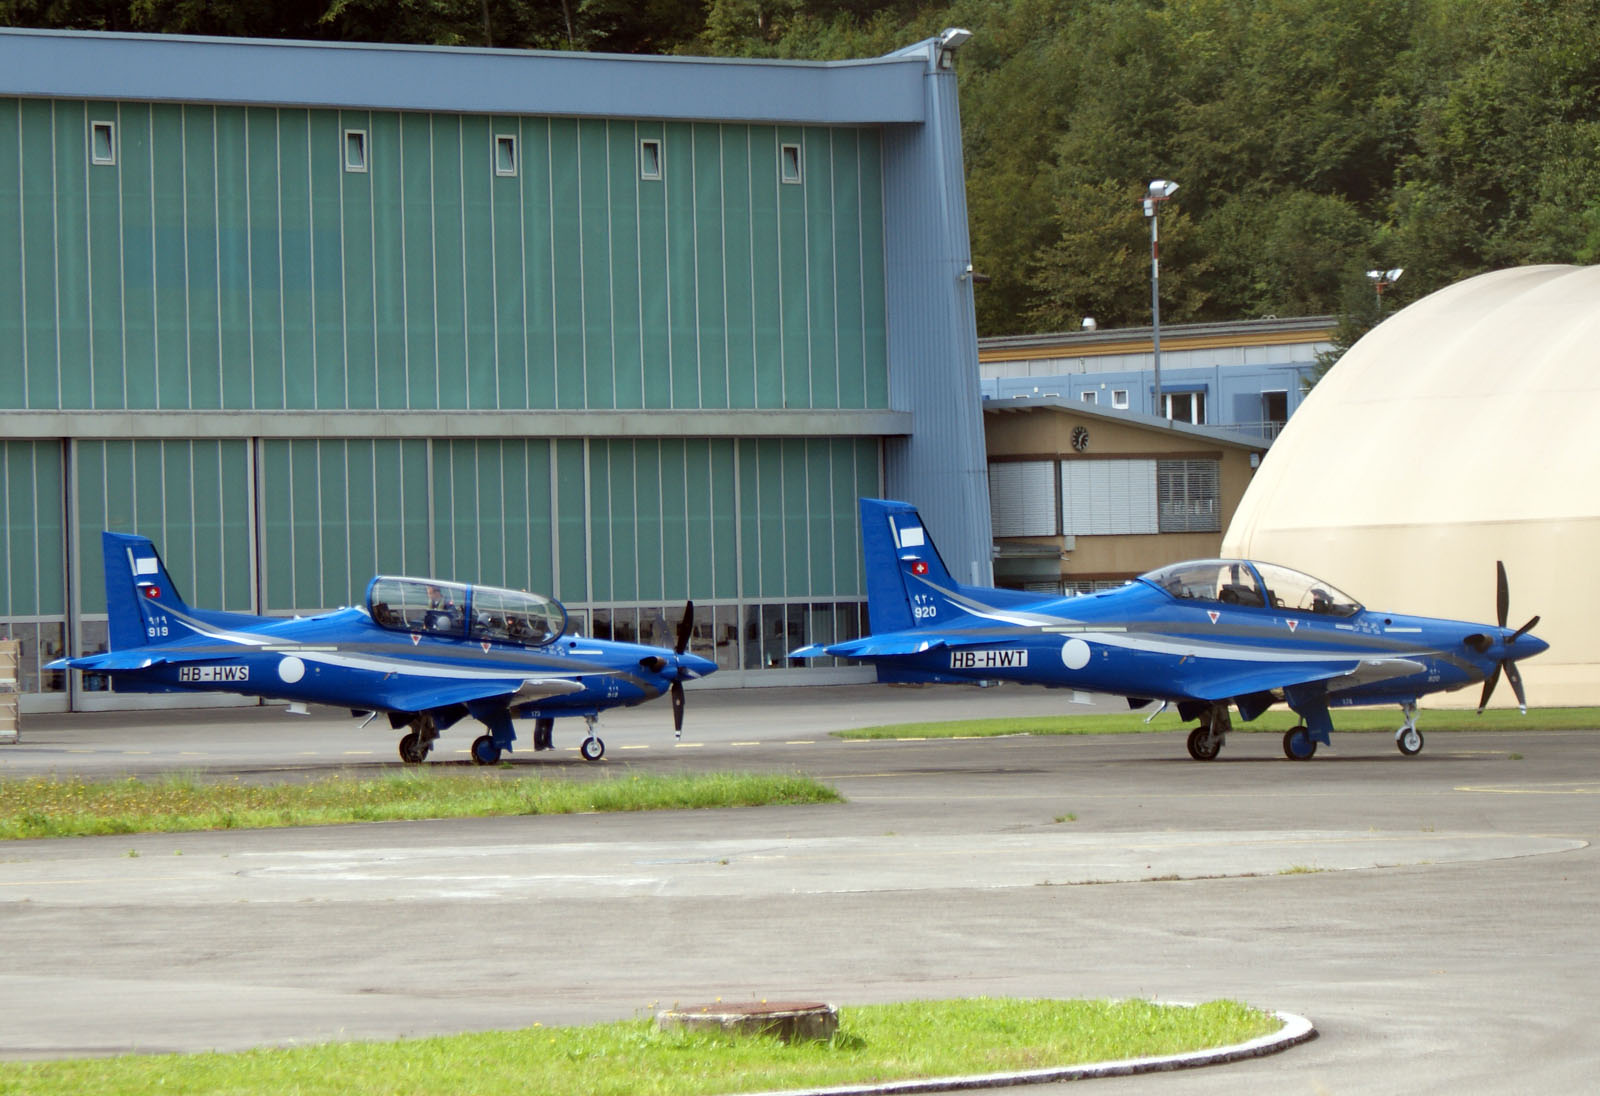 Pilatus PC-21's HB-HWS and HB-HWT Royal Saudi Air Force